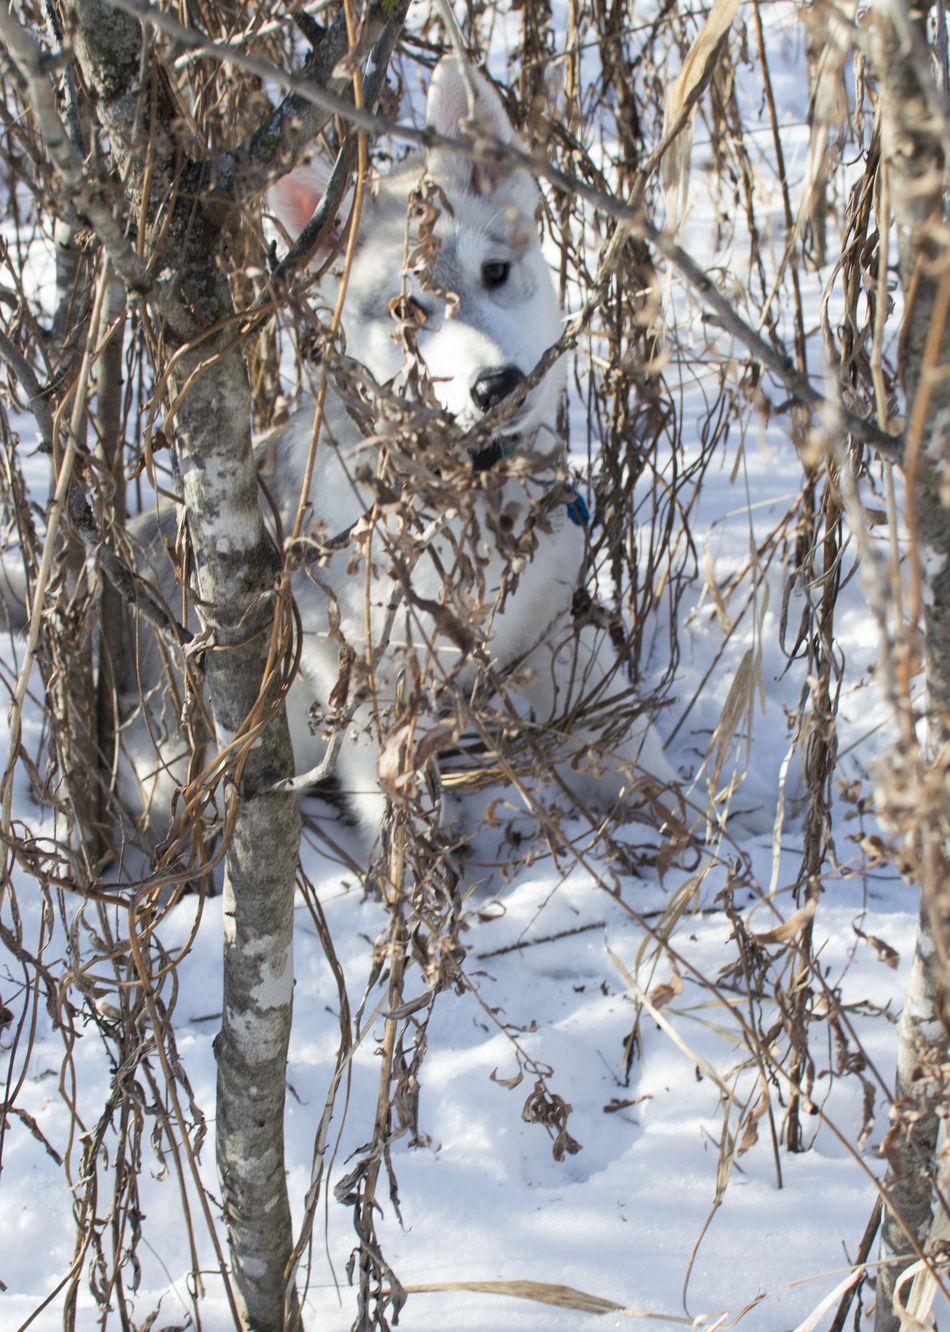 Sneaky little pup. :) Beauty In Nature Close-up Cold Temperature Day Husky Husky Puppy Husky ♡ Ice Low Angle View Minnesota Minnesota Nature Mn Nature Outdoors Puppy Siberian Husky Snow Weather White Color Winter